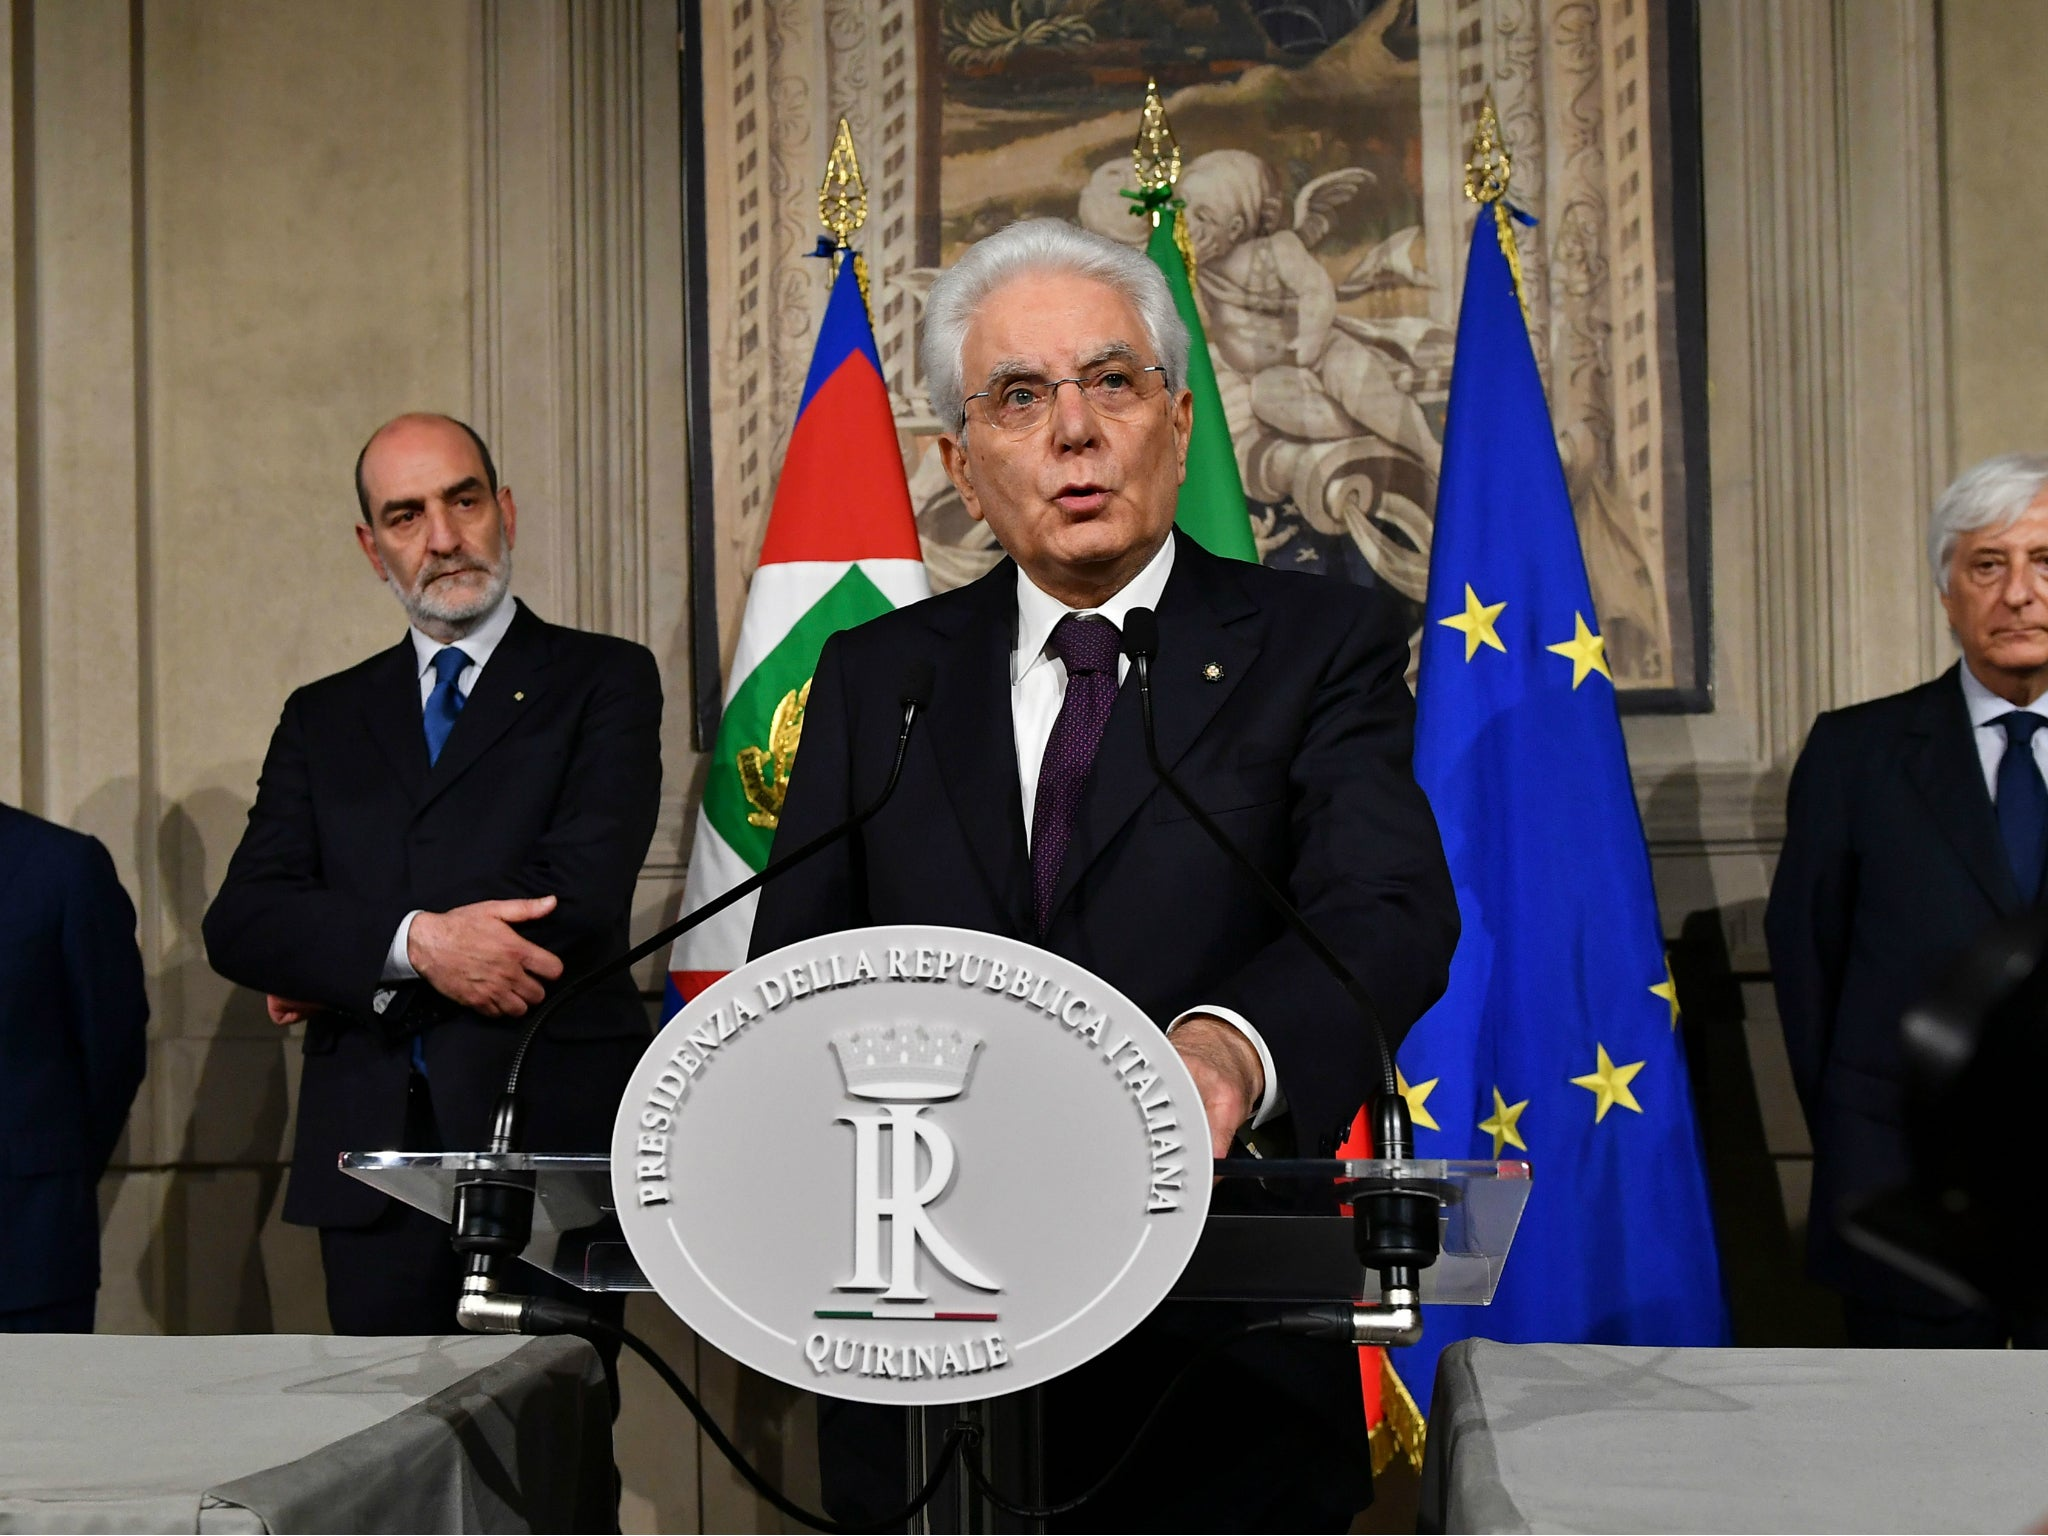 Italian Premier Monti Won't Fight Marriage Equality if Re-Elected